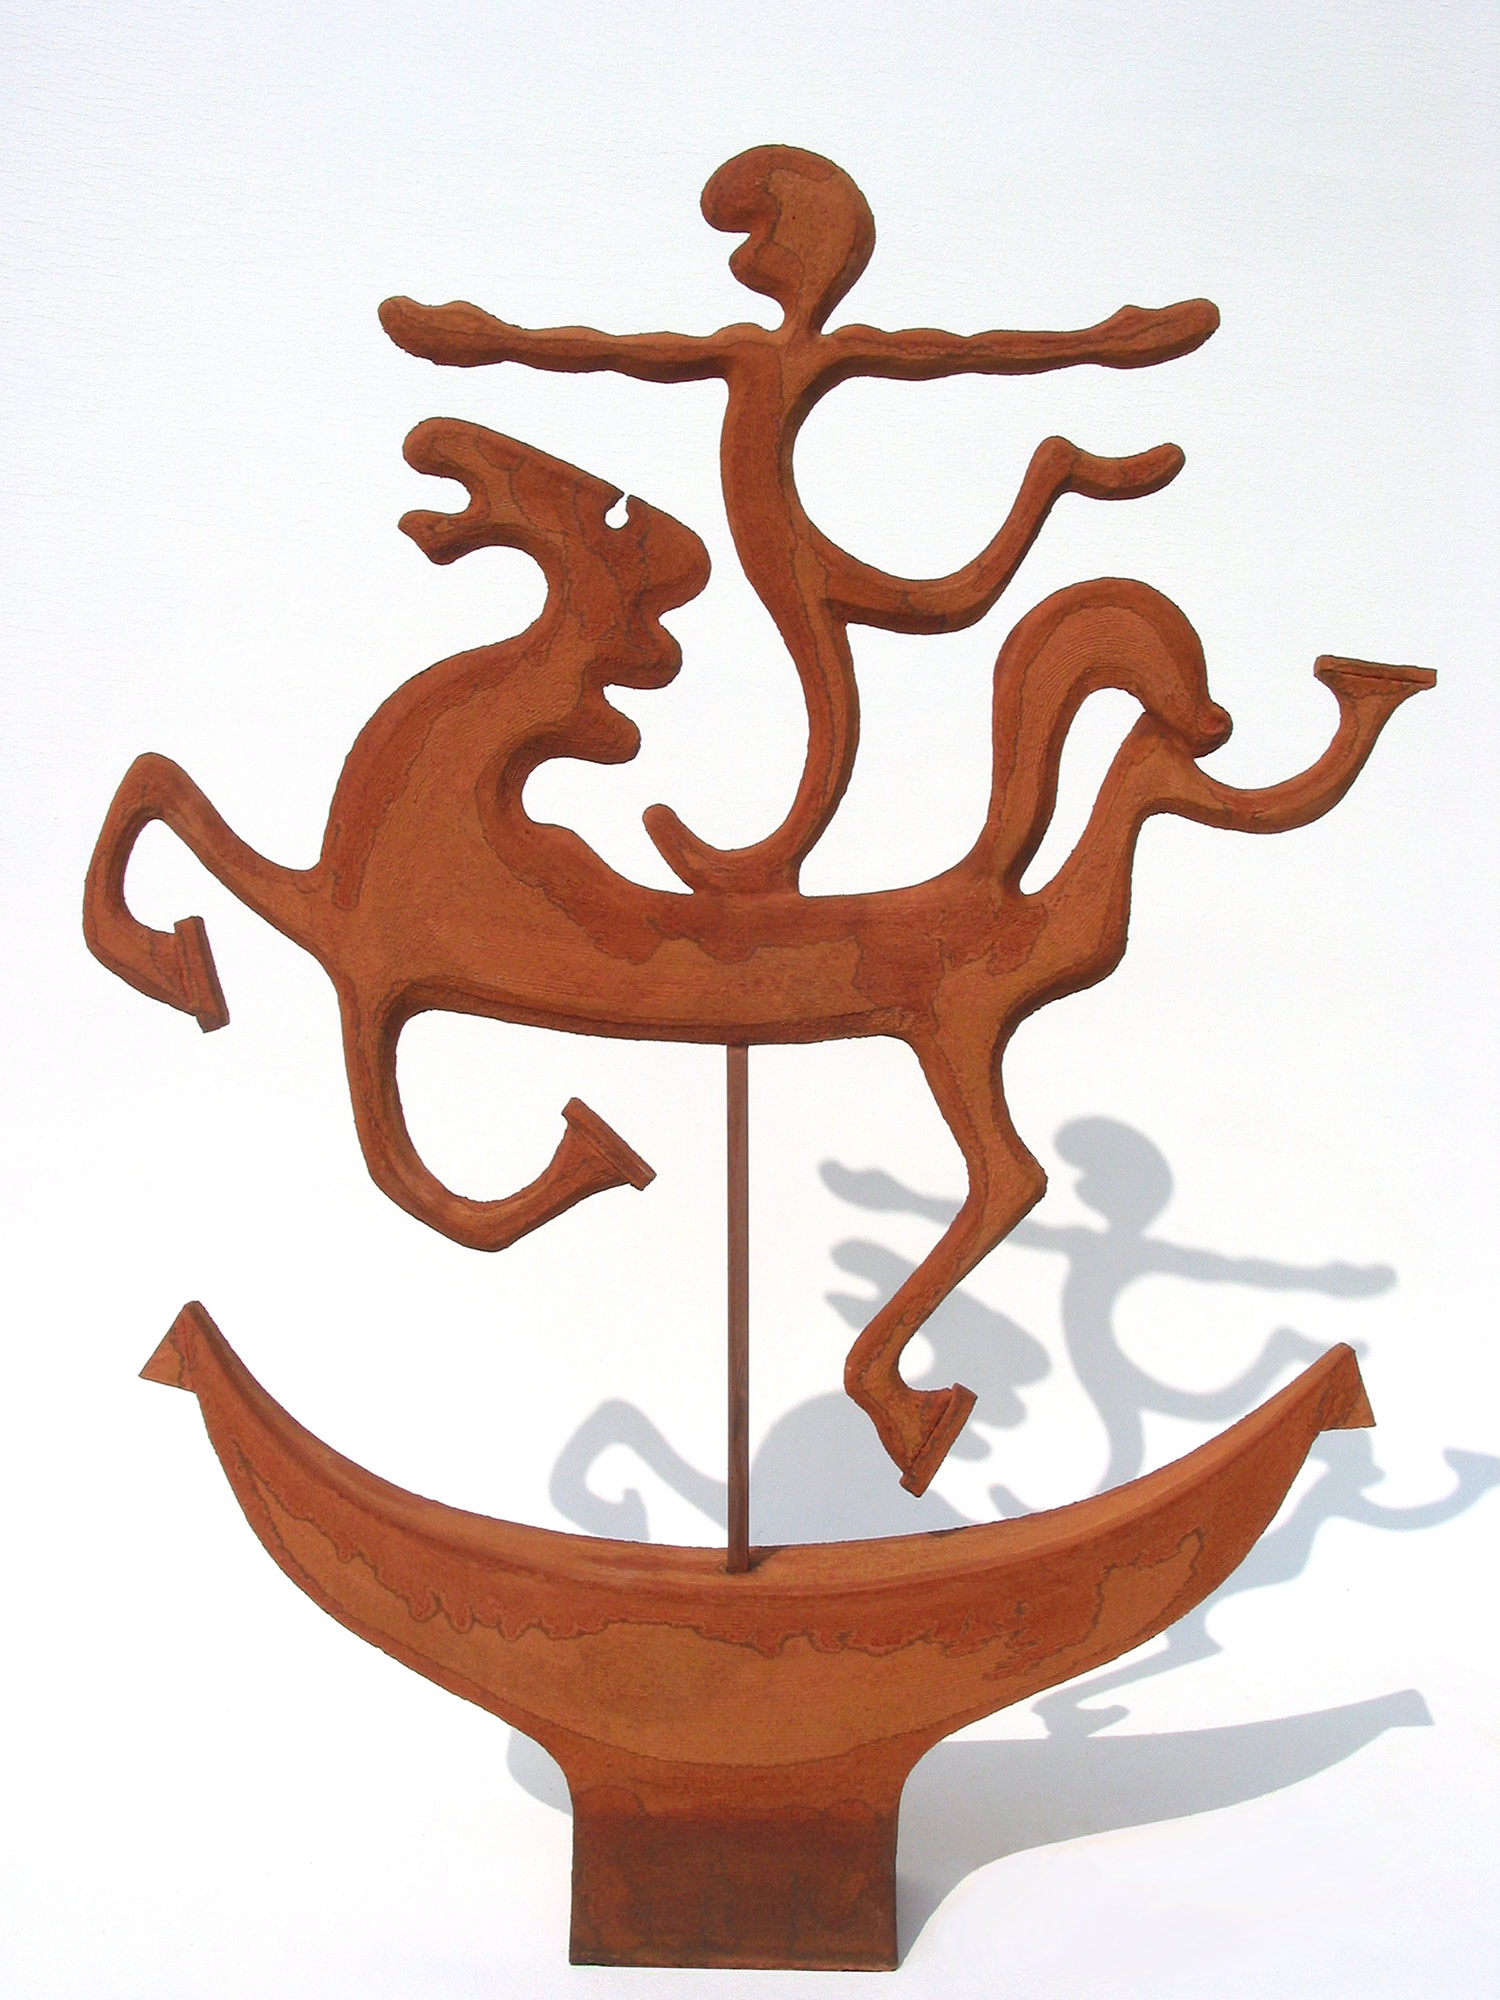 King Creole   ©  87 cm high x 66 cm wide  Unique  Flying over a Norse-like vessel, a Celtic war-horse – simple, like an iron-age chalk downs carving, gallops with a standing rider on board.  The rider is based on the cave scratching of an even earlier art form to become a Neolithic King with an Elvis quiff or a primitive mouth.  The weathervane arms point east and west and echo the Christian cross.